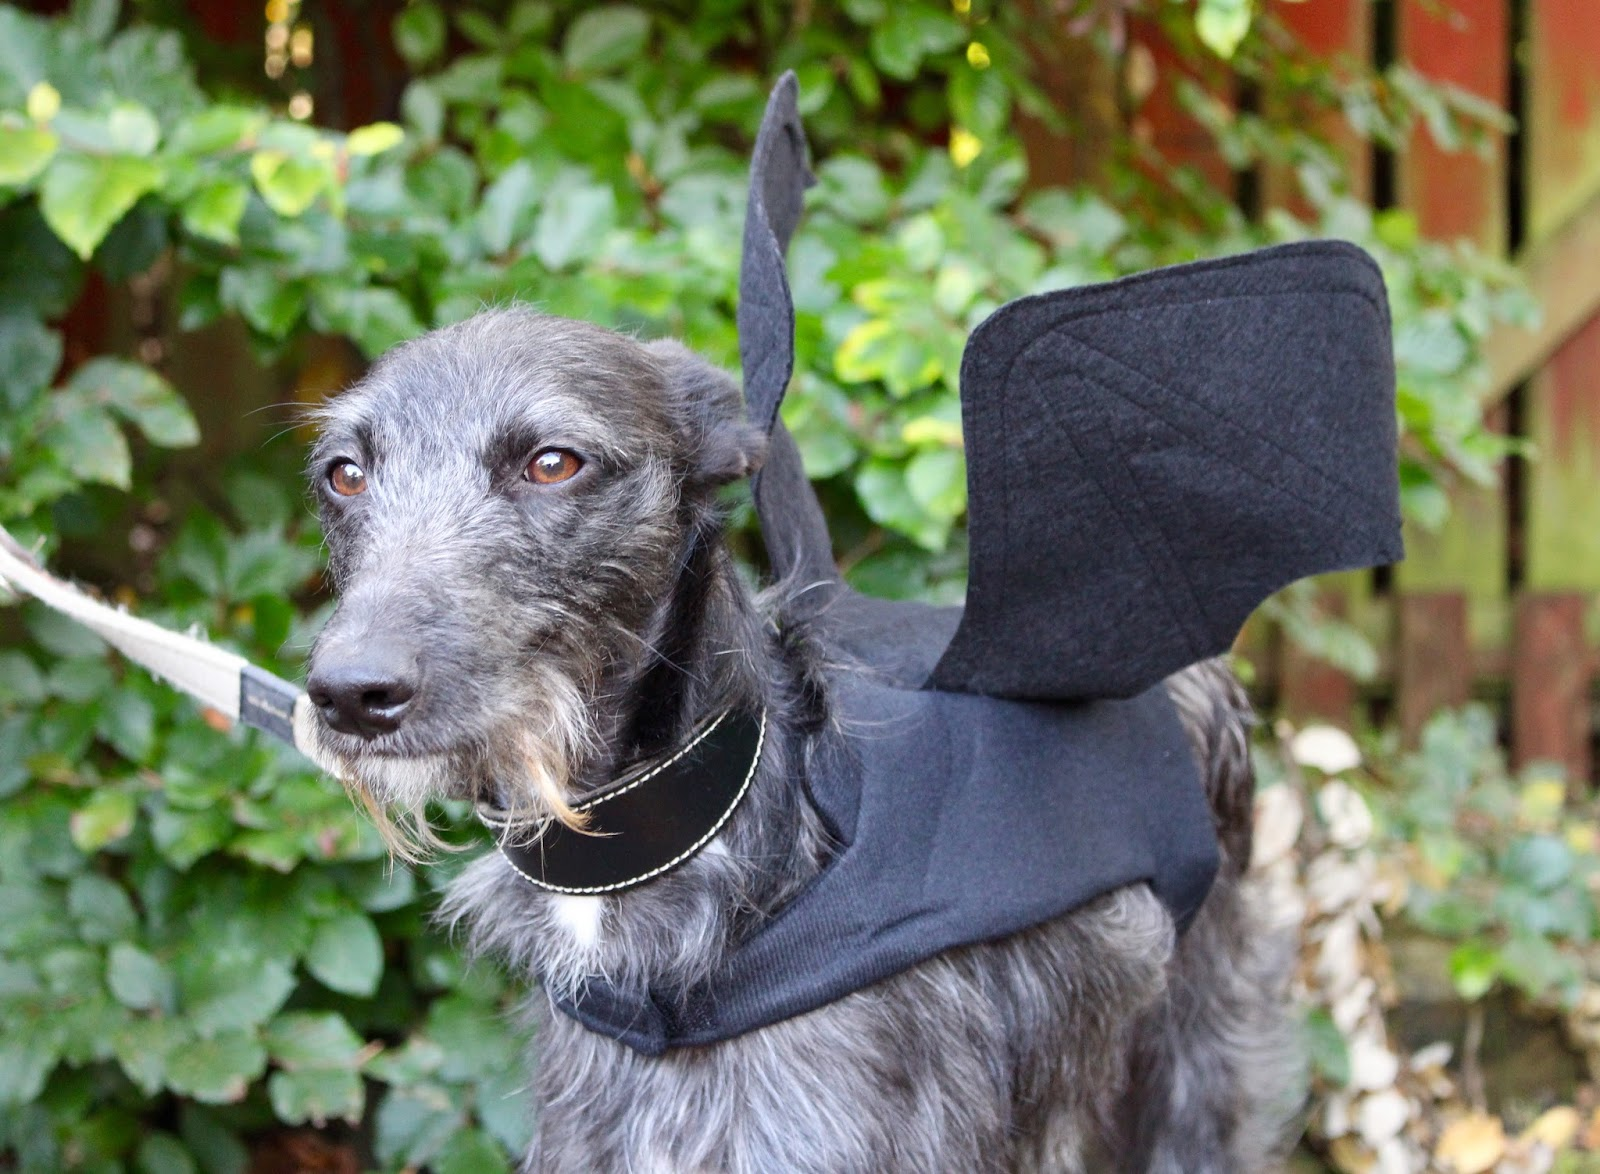 Dog dressed as a bat.